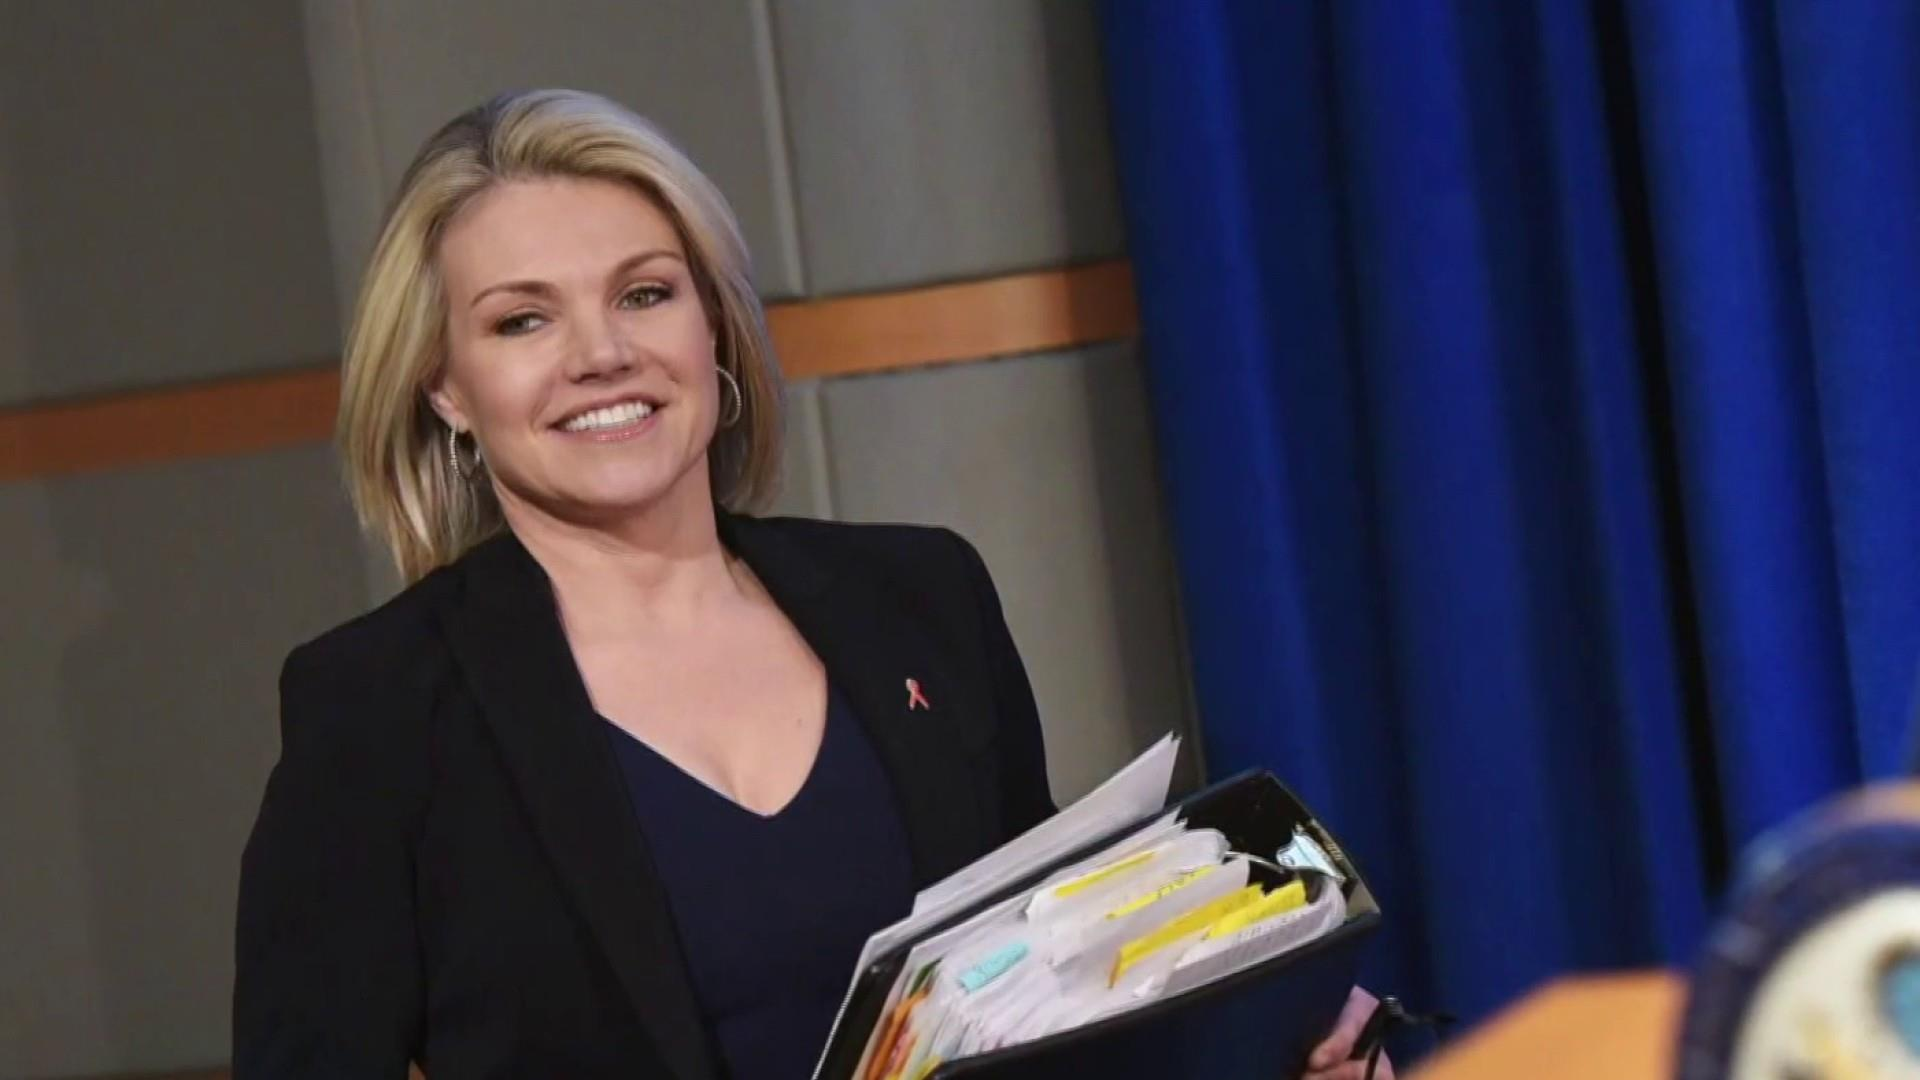 Heather Nauert joins a long list of questionably qualified Trump nominees